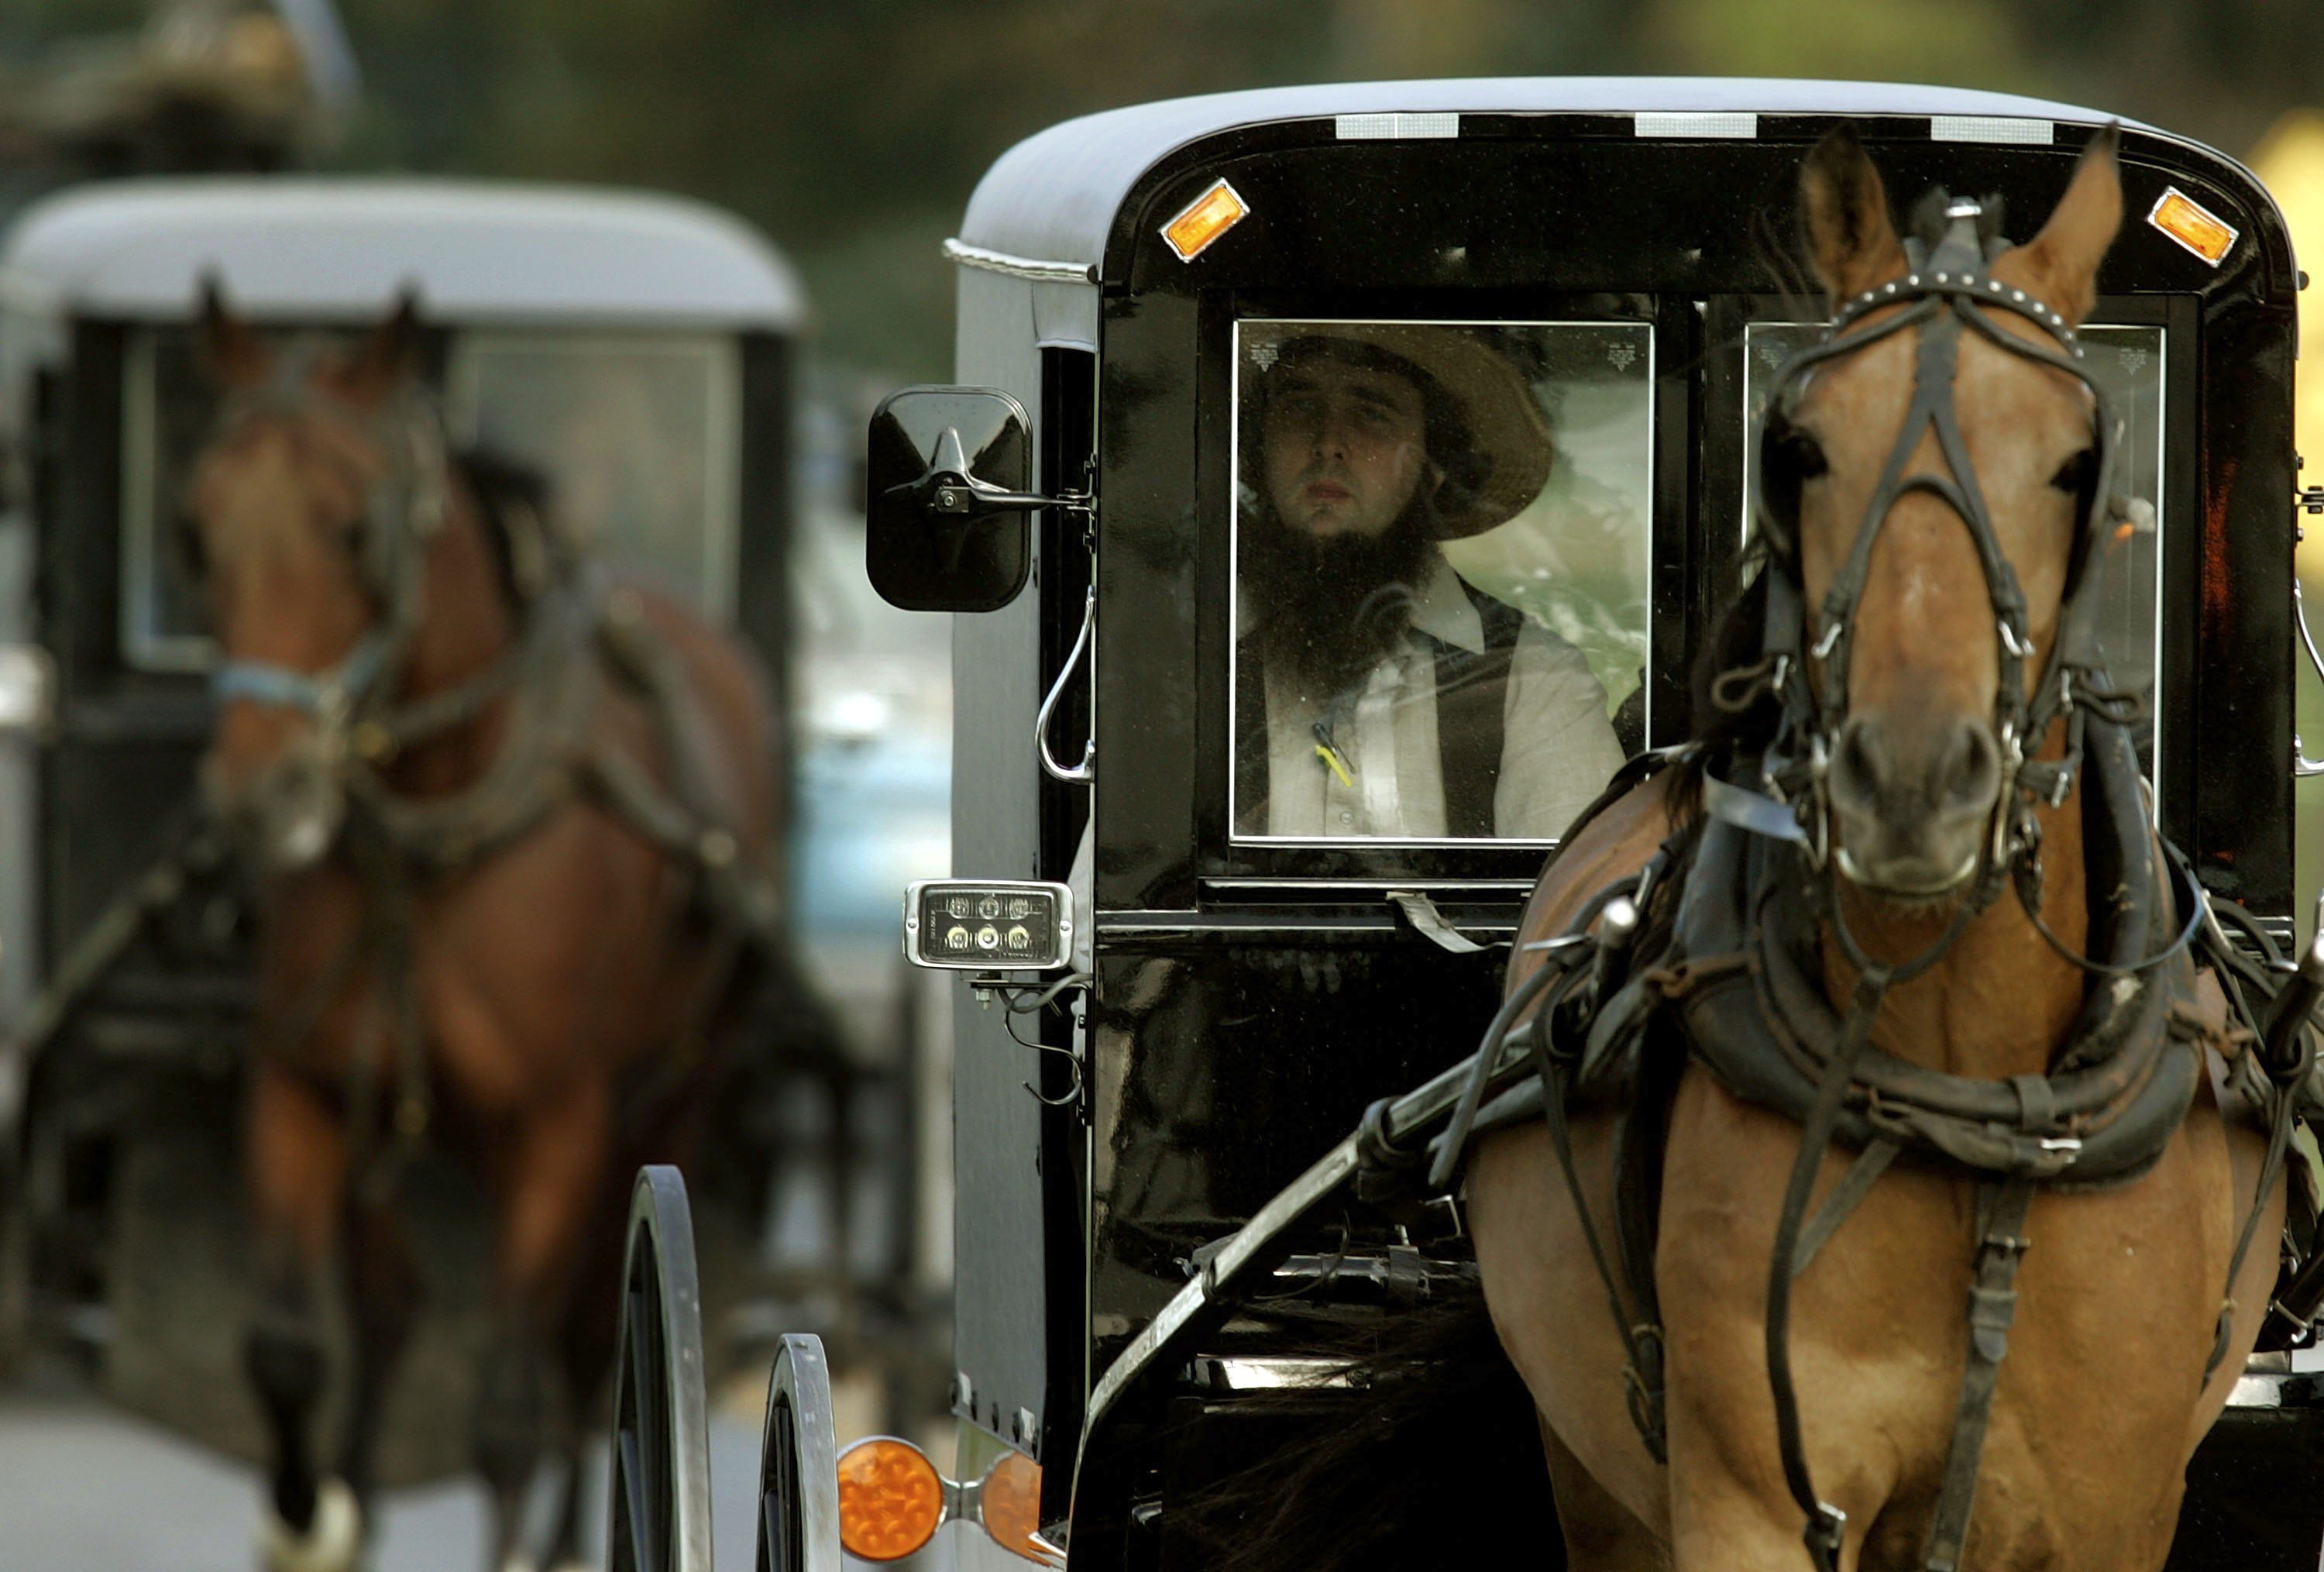 The Amish Horse-Drawn Buggy Is More Tech-Forward Than You Think